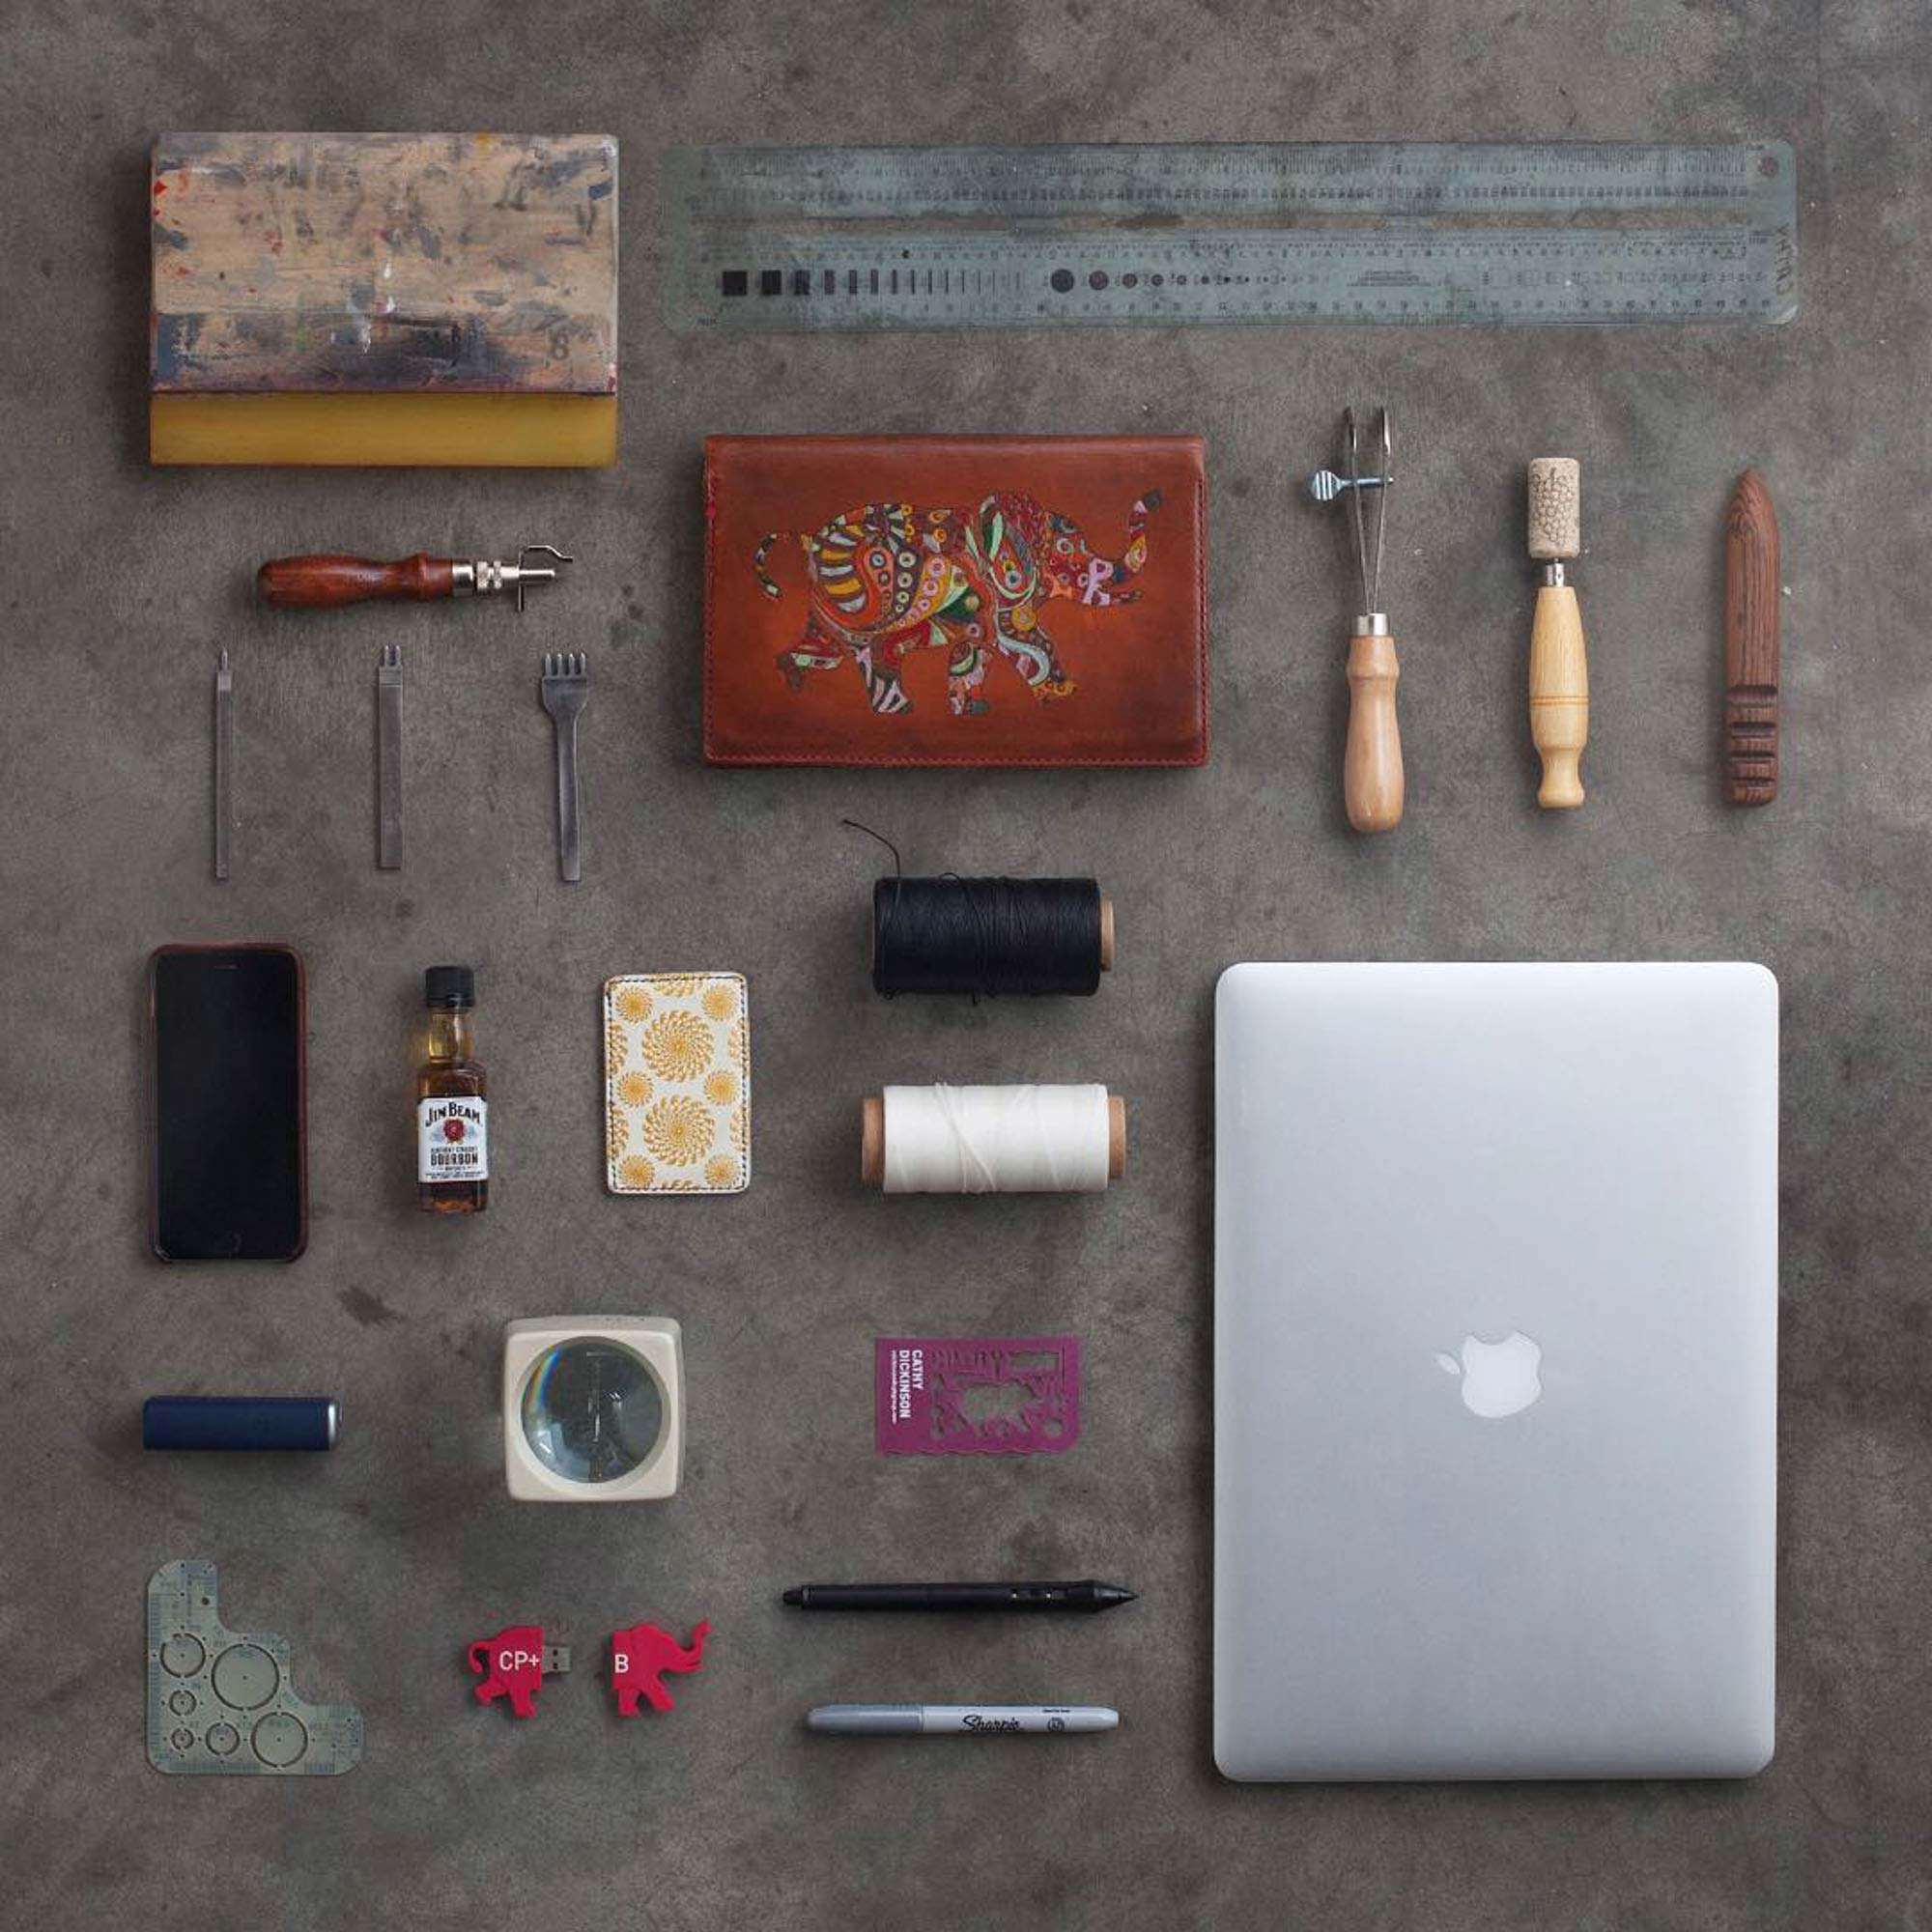 Knolling photography of items found on the desk of art department artist at Crispin Porter + Bogusky | Still Life Photography | Shot in Boulder, Colorado for Crispin Porter + Bogusky